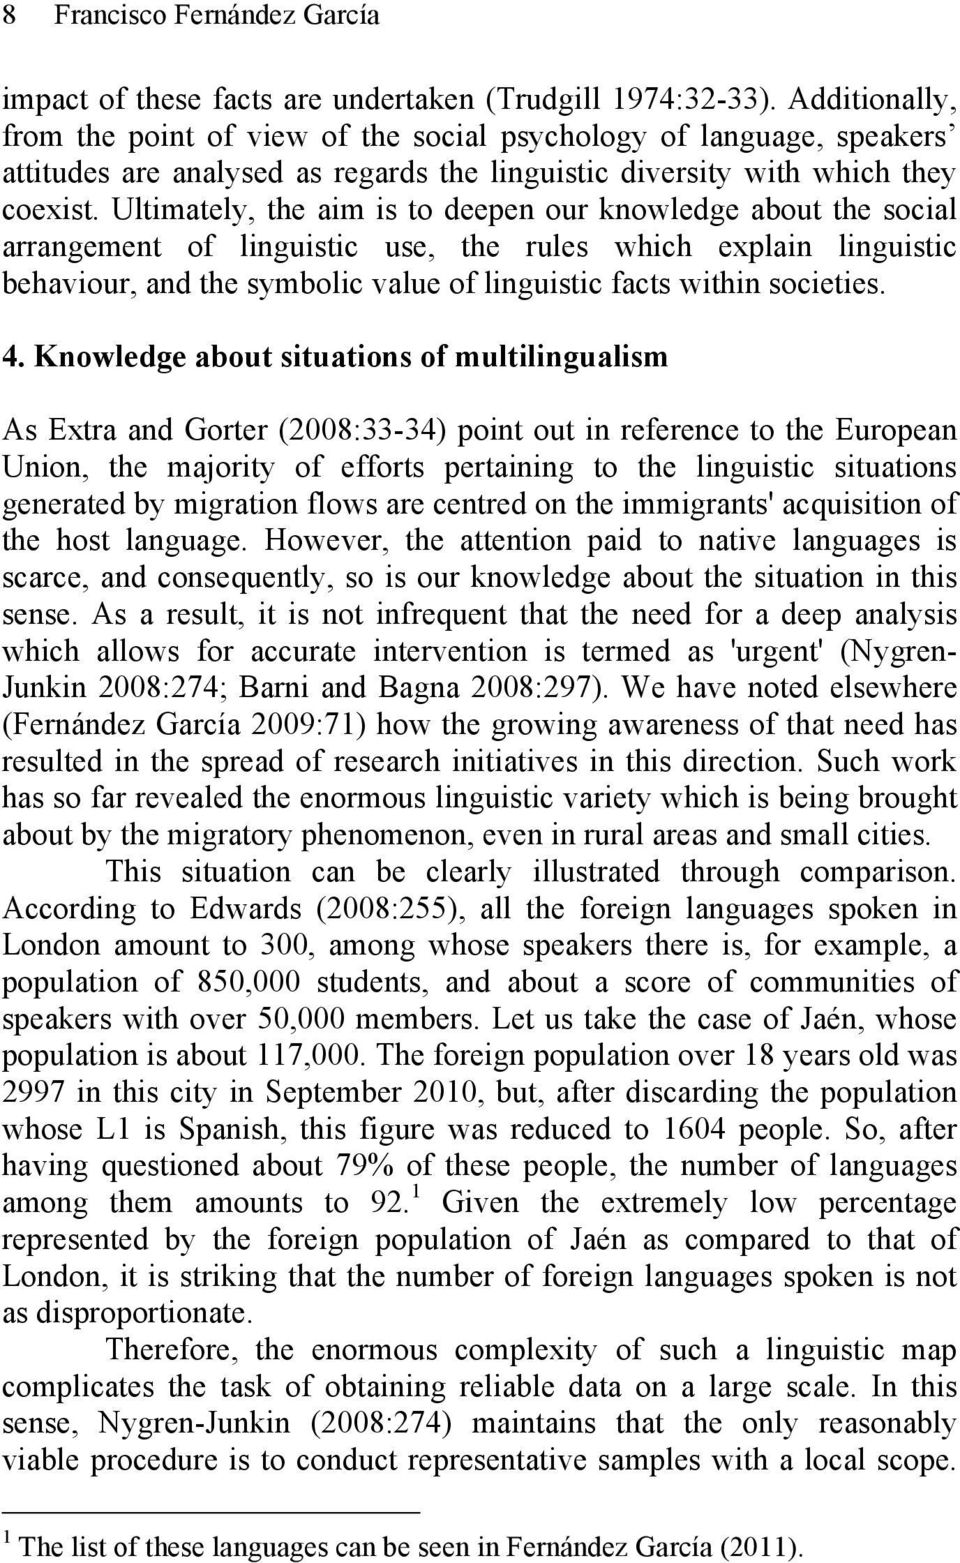 Ultimately, the aim is to deepen our knowledge about the social arrangement of linguistic use, the rules which explain linguistic behaviour, and the symbolic value of linguistic facts within